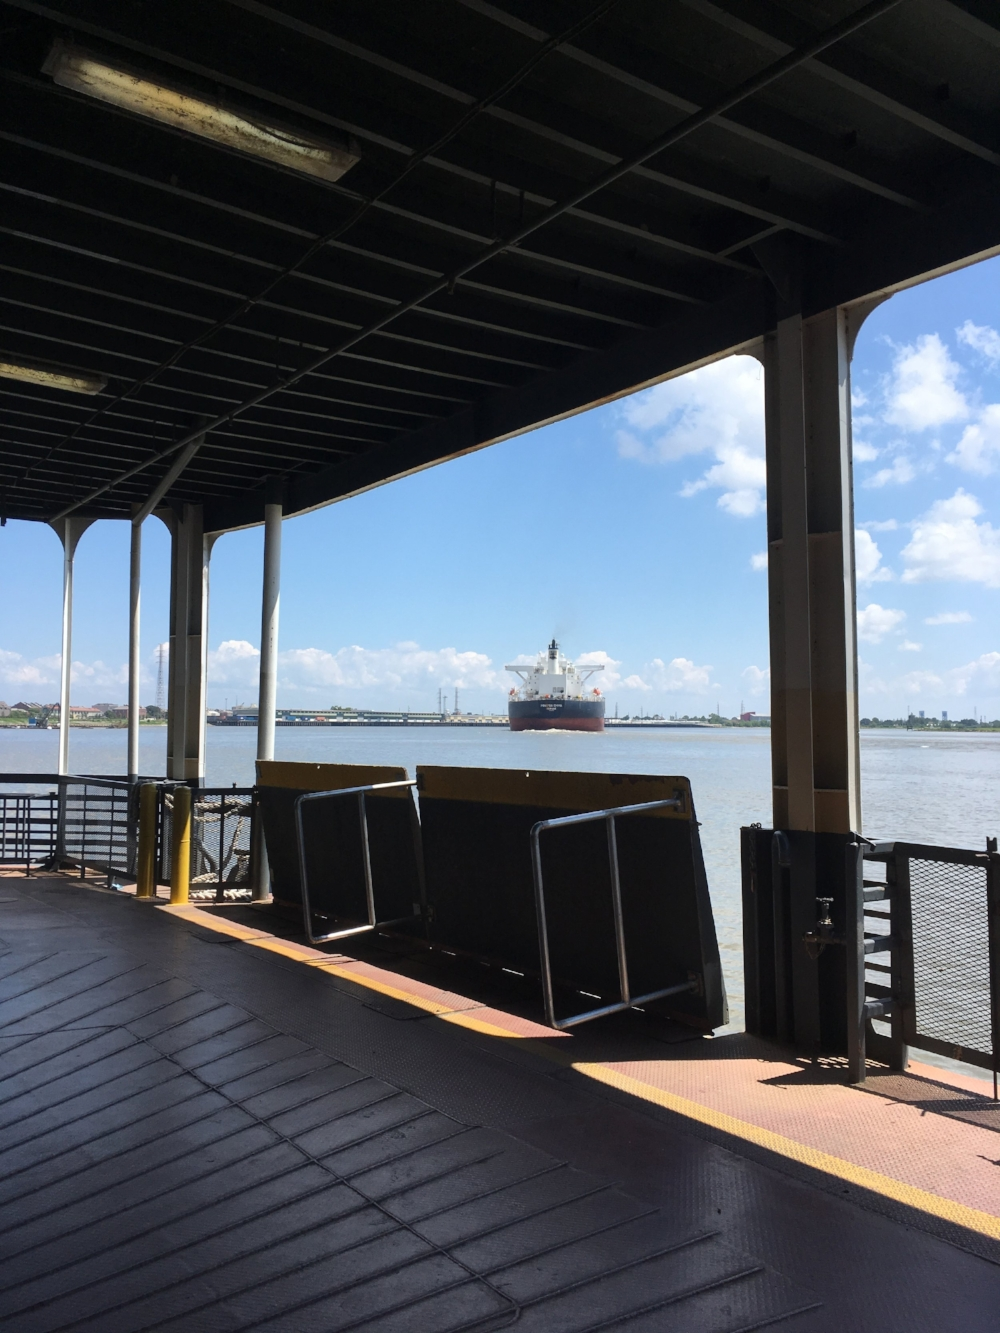 nola algiers canal street ferry to algiers new orleans